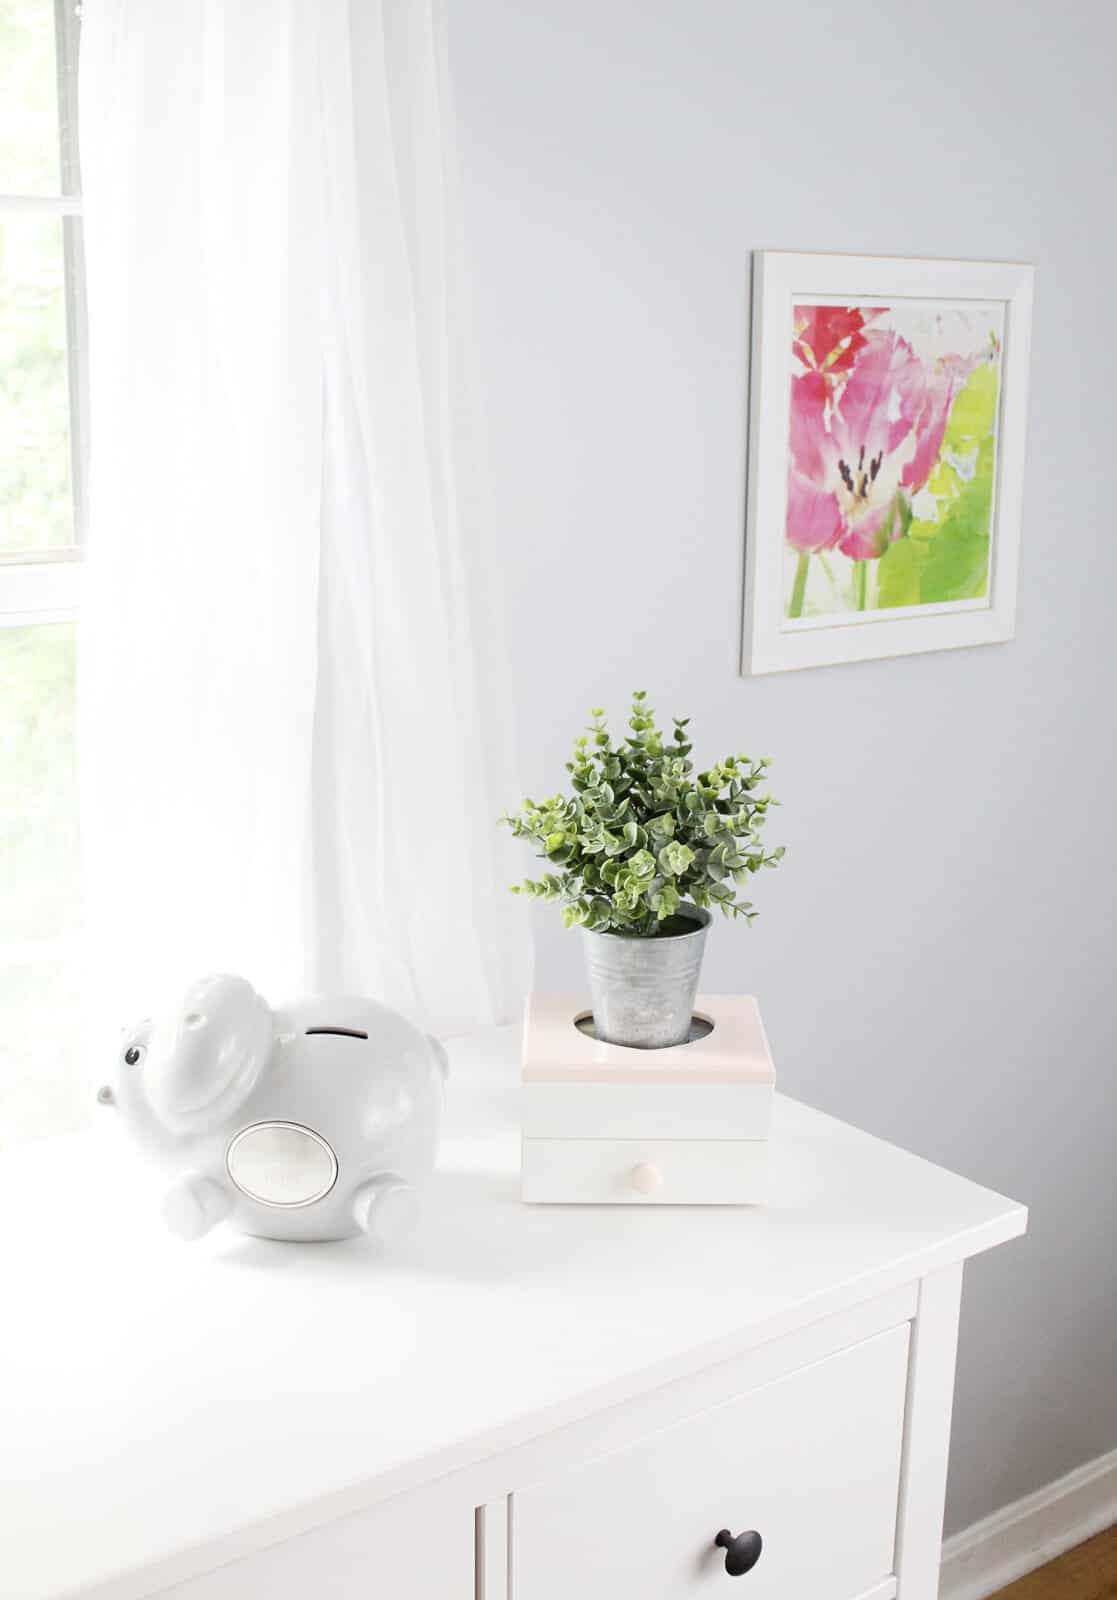 Home decor items for dream home planning.